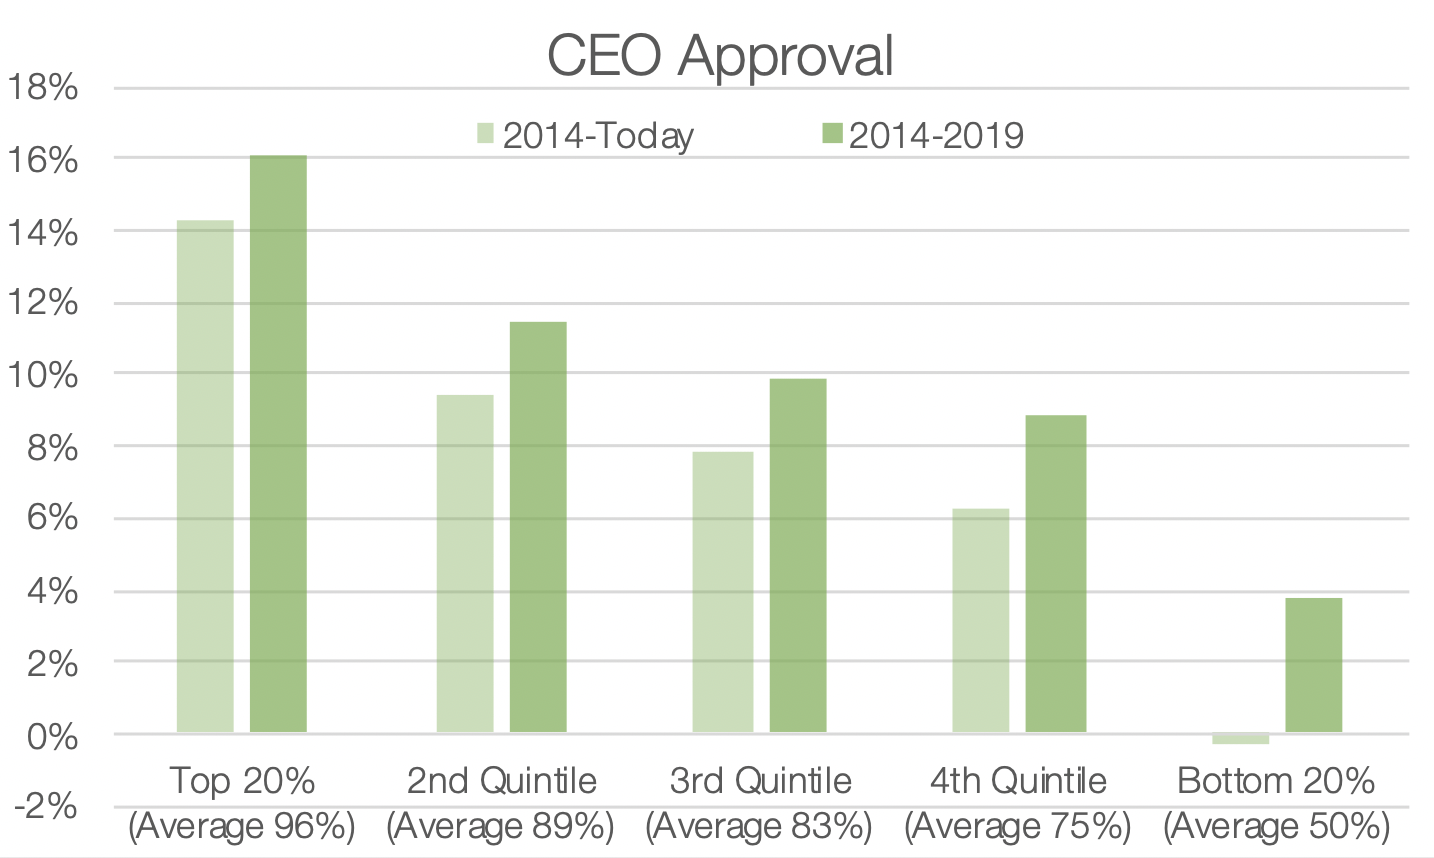 CEO Approval